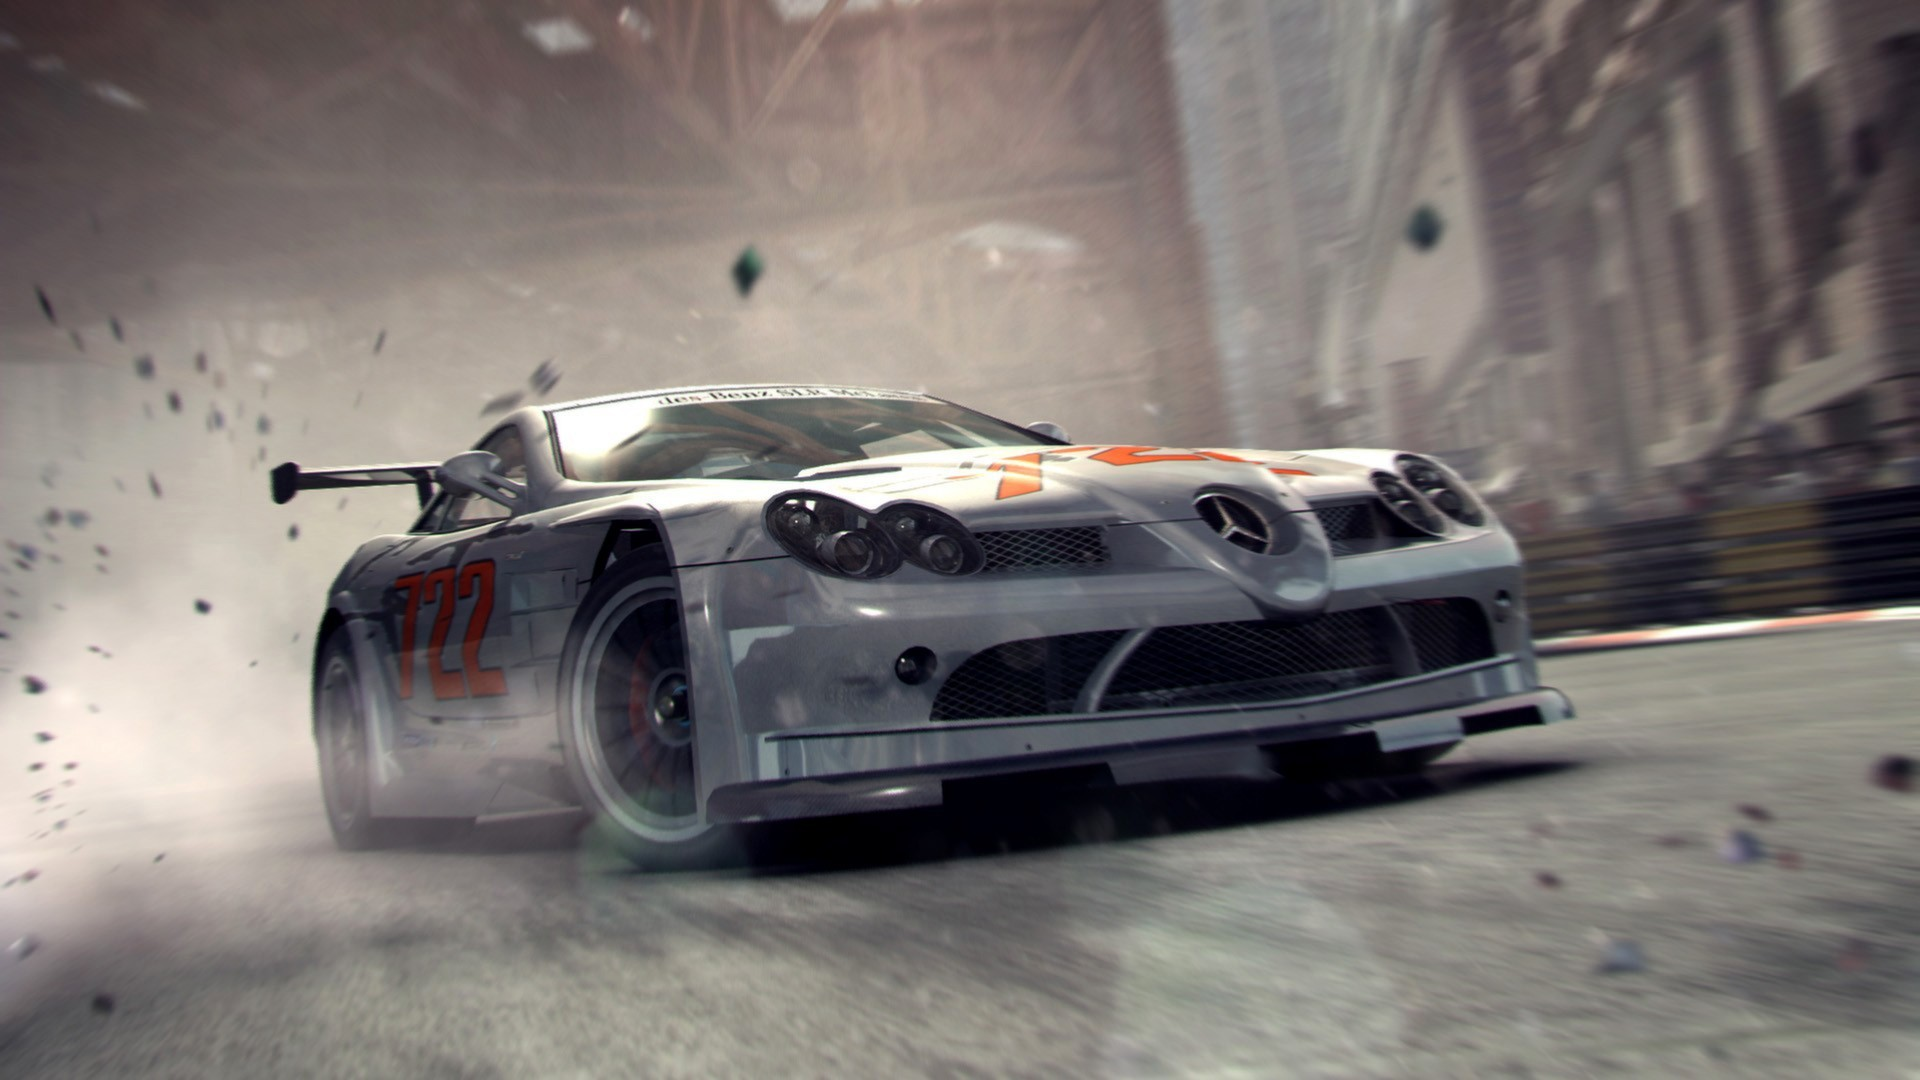 Grid 2 Game Wallpaper High Resolution Pics: Race-Driver-Grid-2 Full HD Wallpaper And Background Image